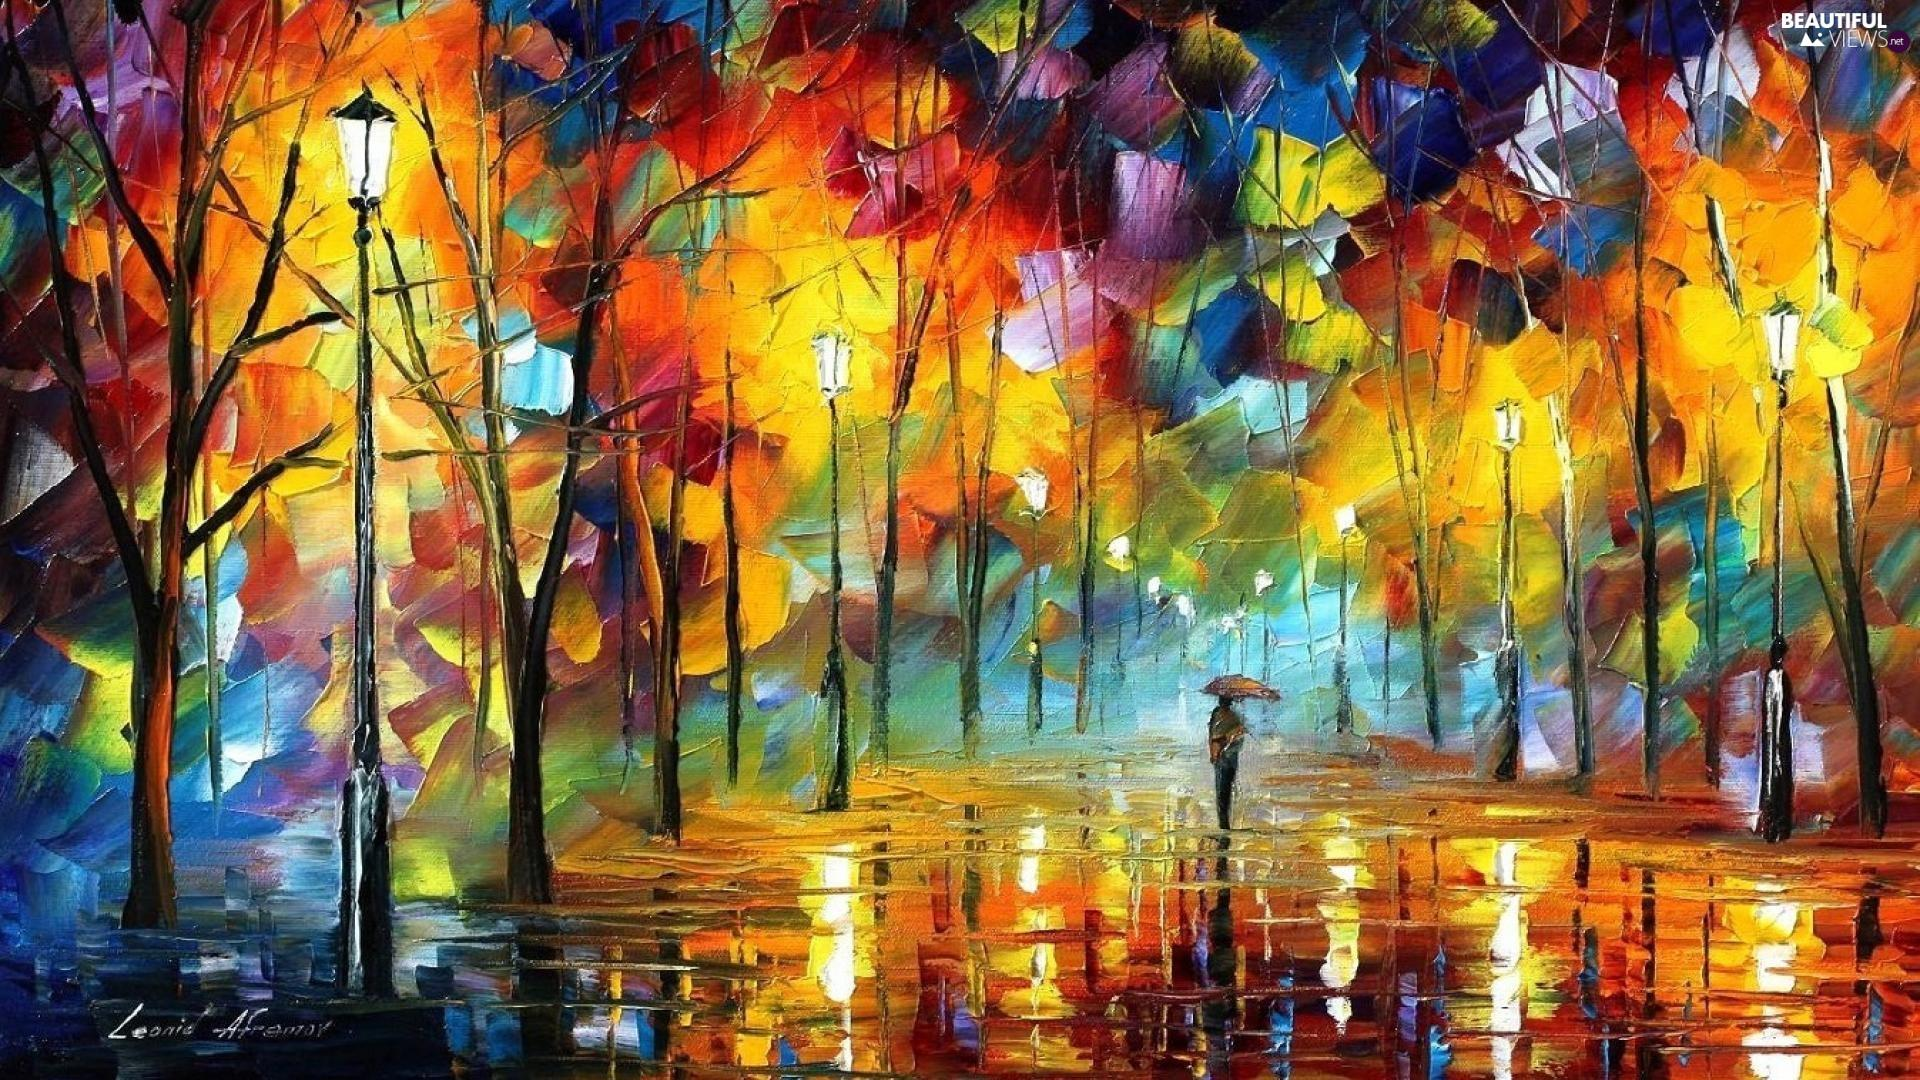 trees, viewes, alley, Umbrella, form, Art Image, Leonid Afremov, autumn, Rain